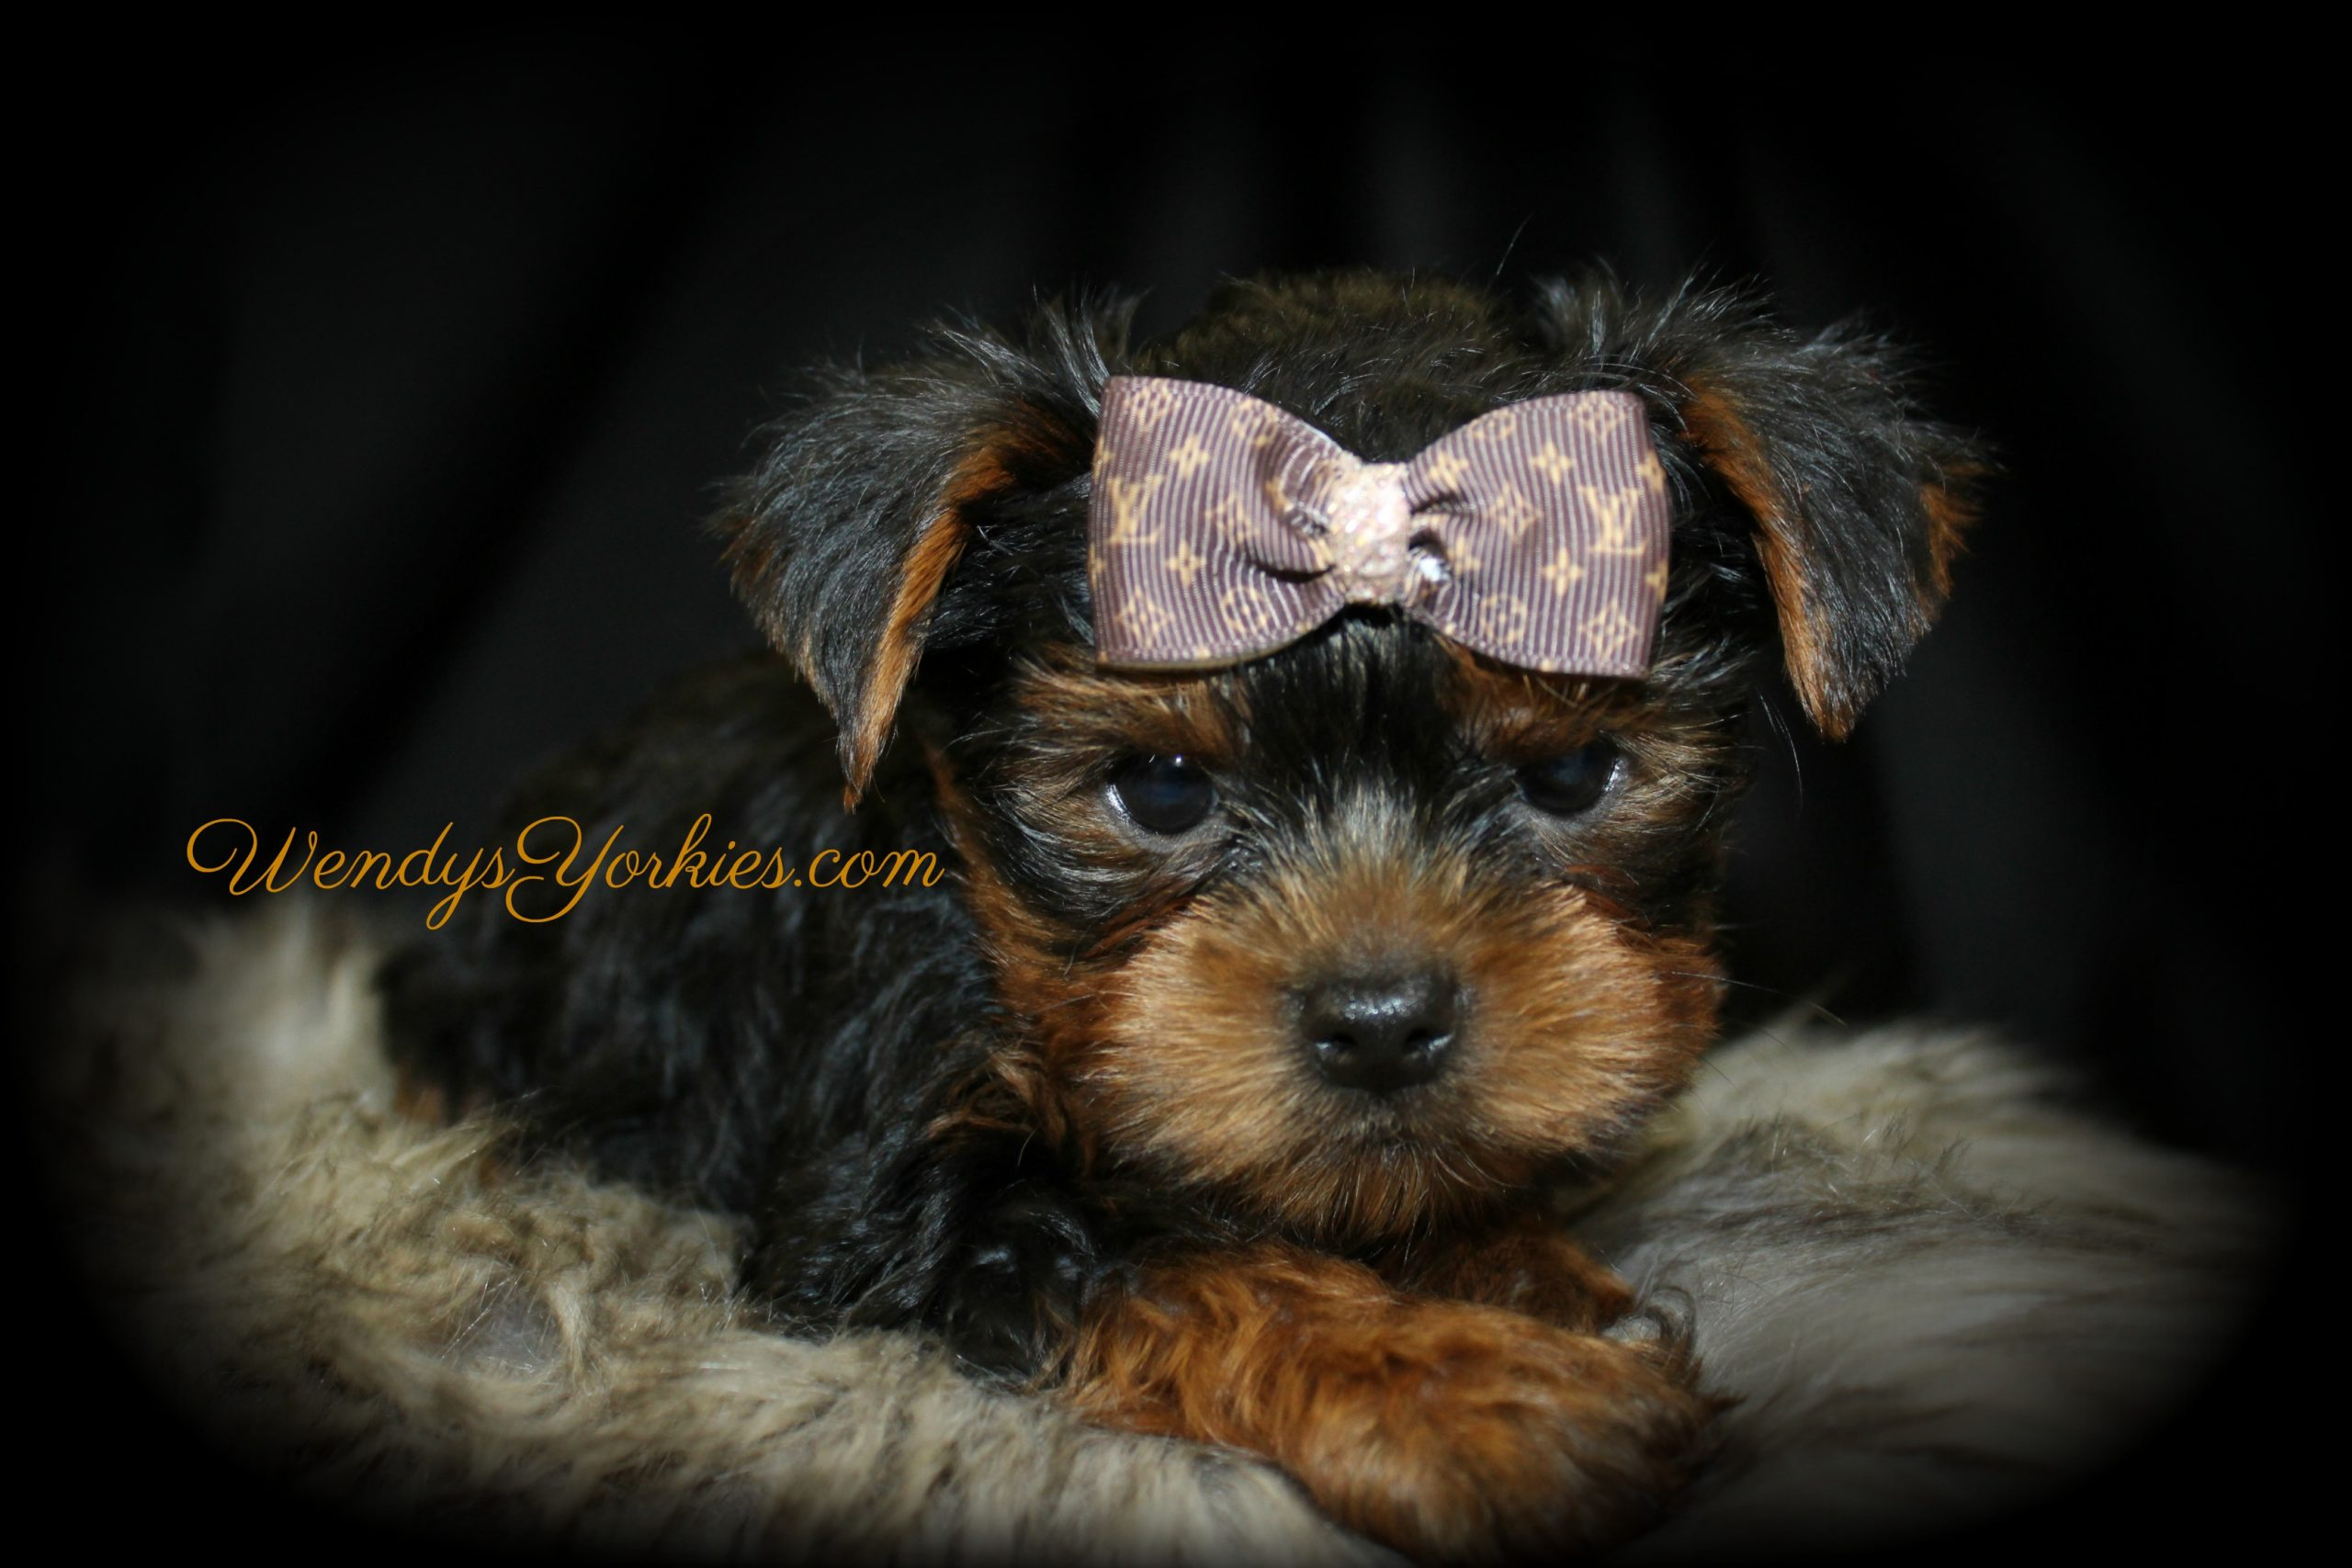 Male Yorkie puppy for sale in Texas, Louie, WendysYorkies.com